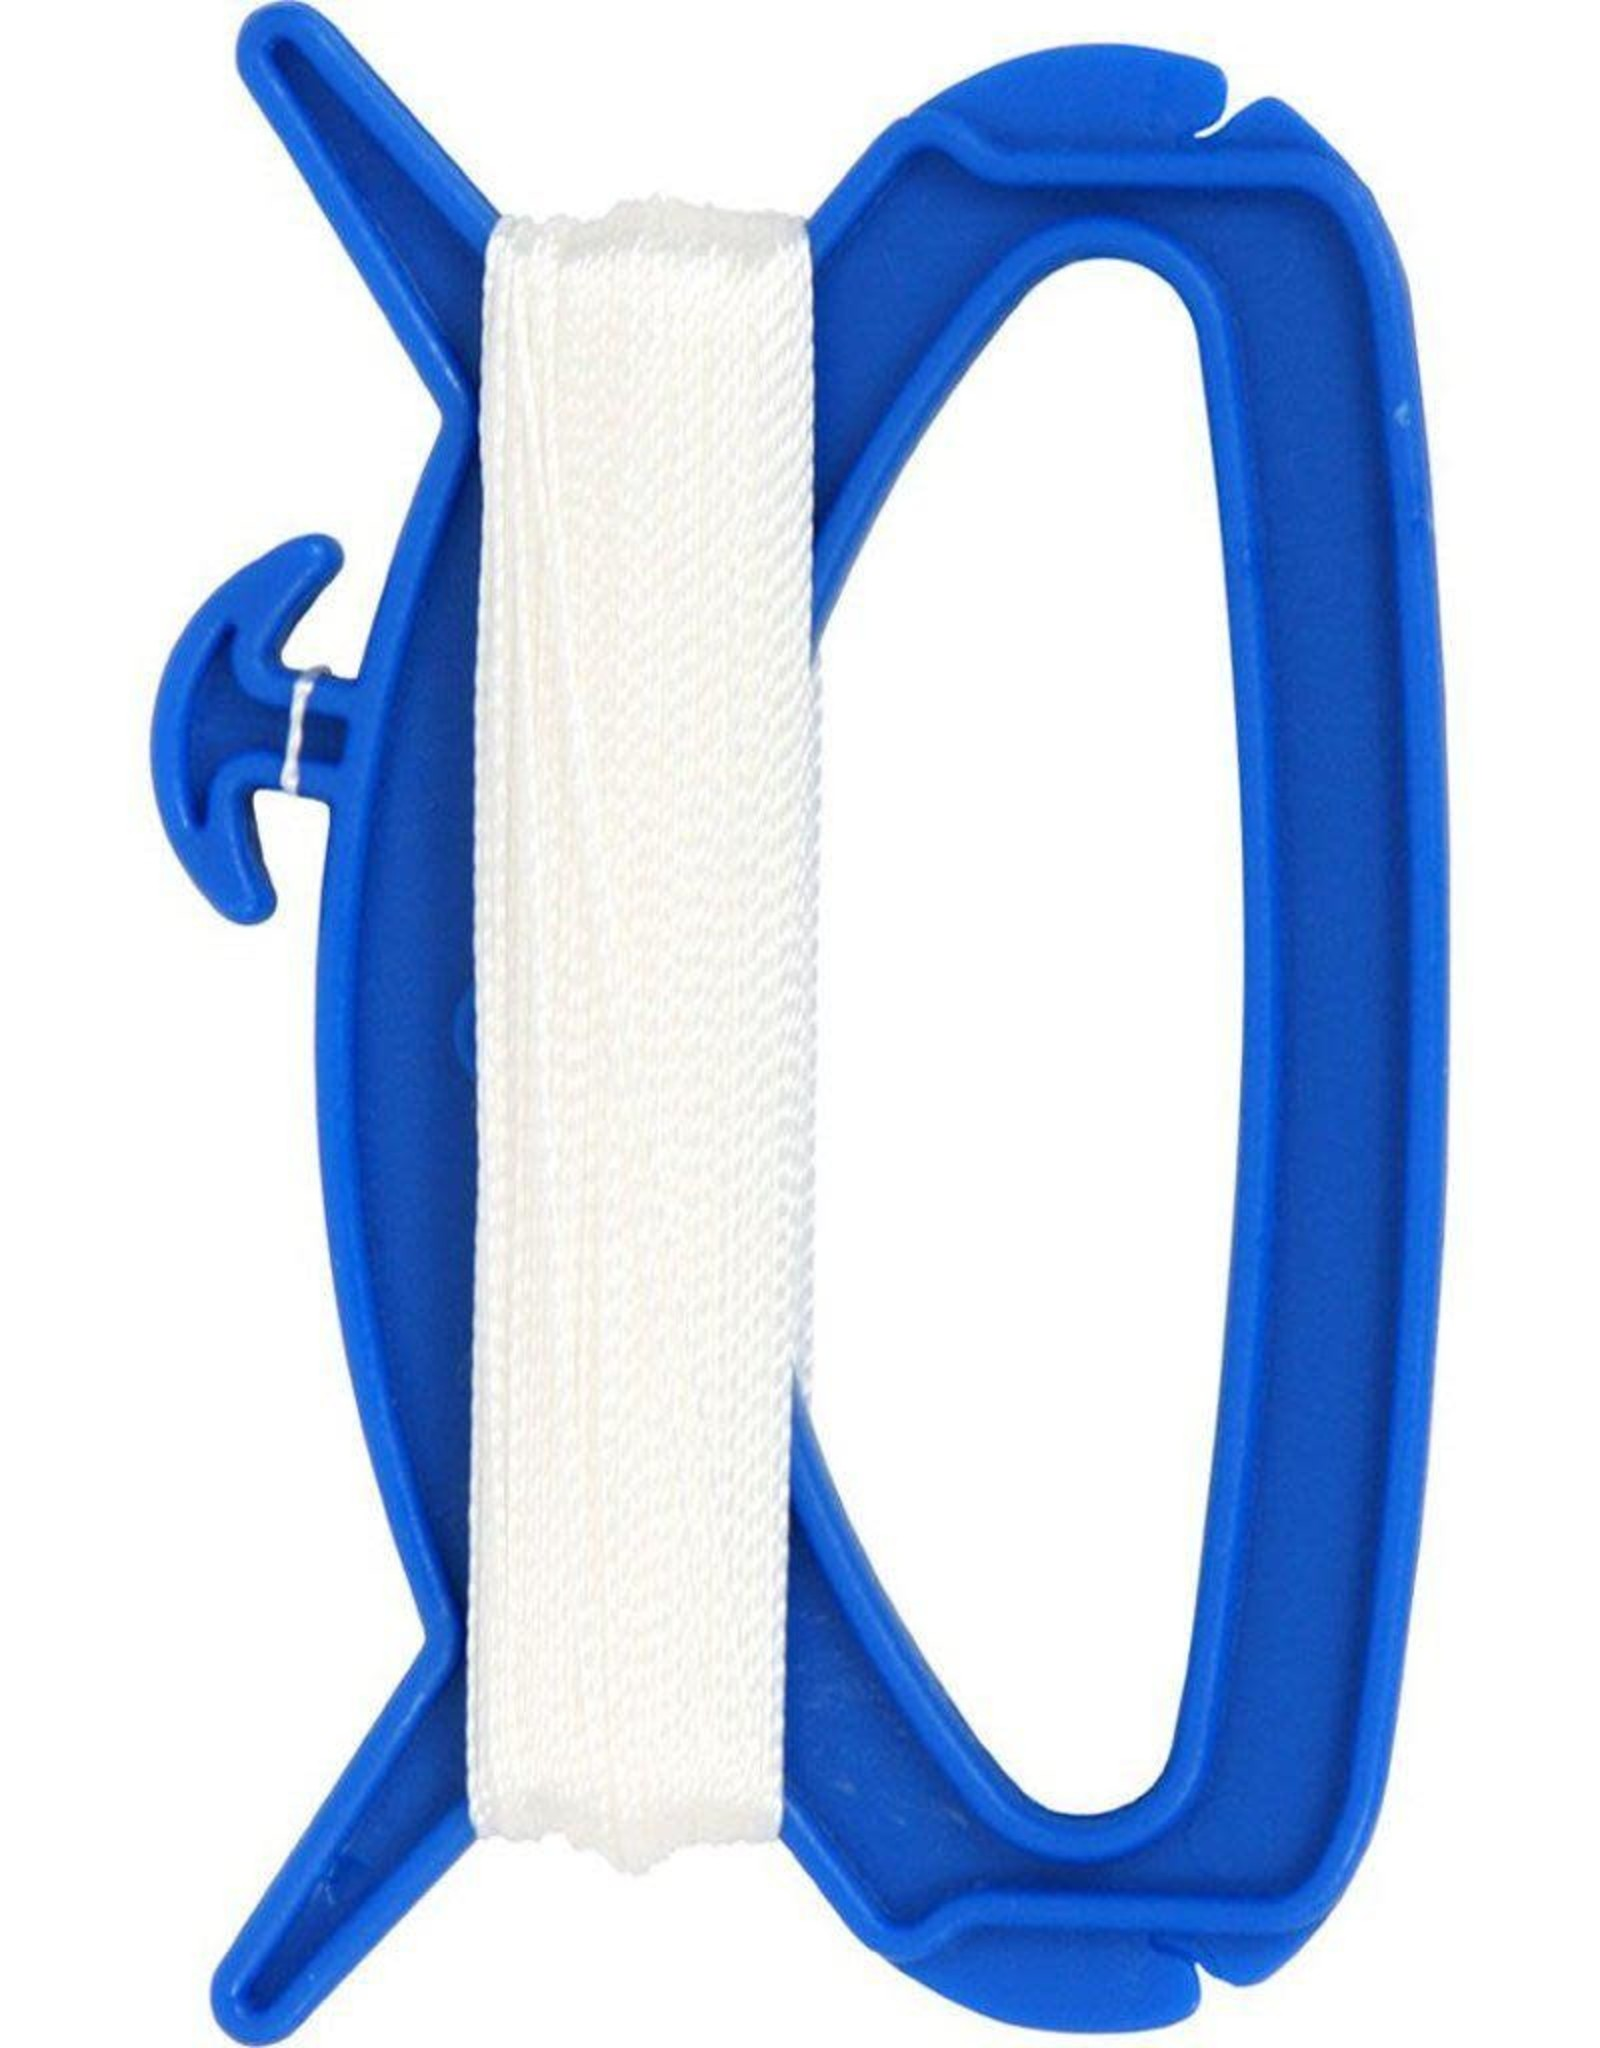 Grips with line 50 m (165 ft.), 15 kp (33 lb.) for kite